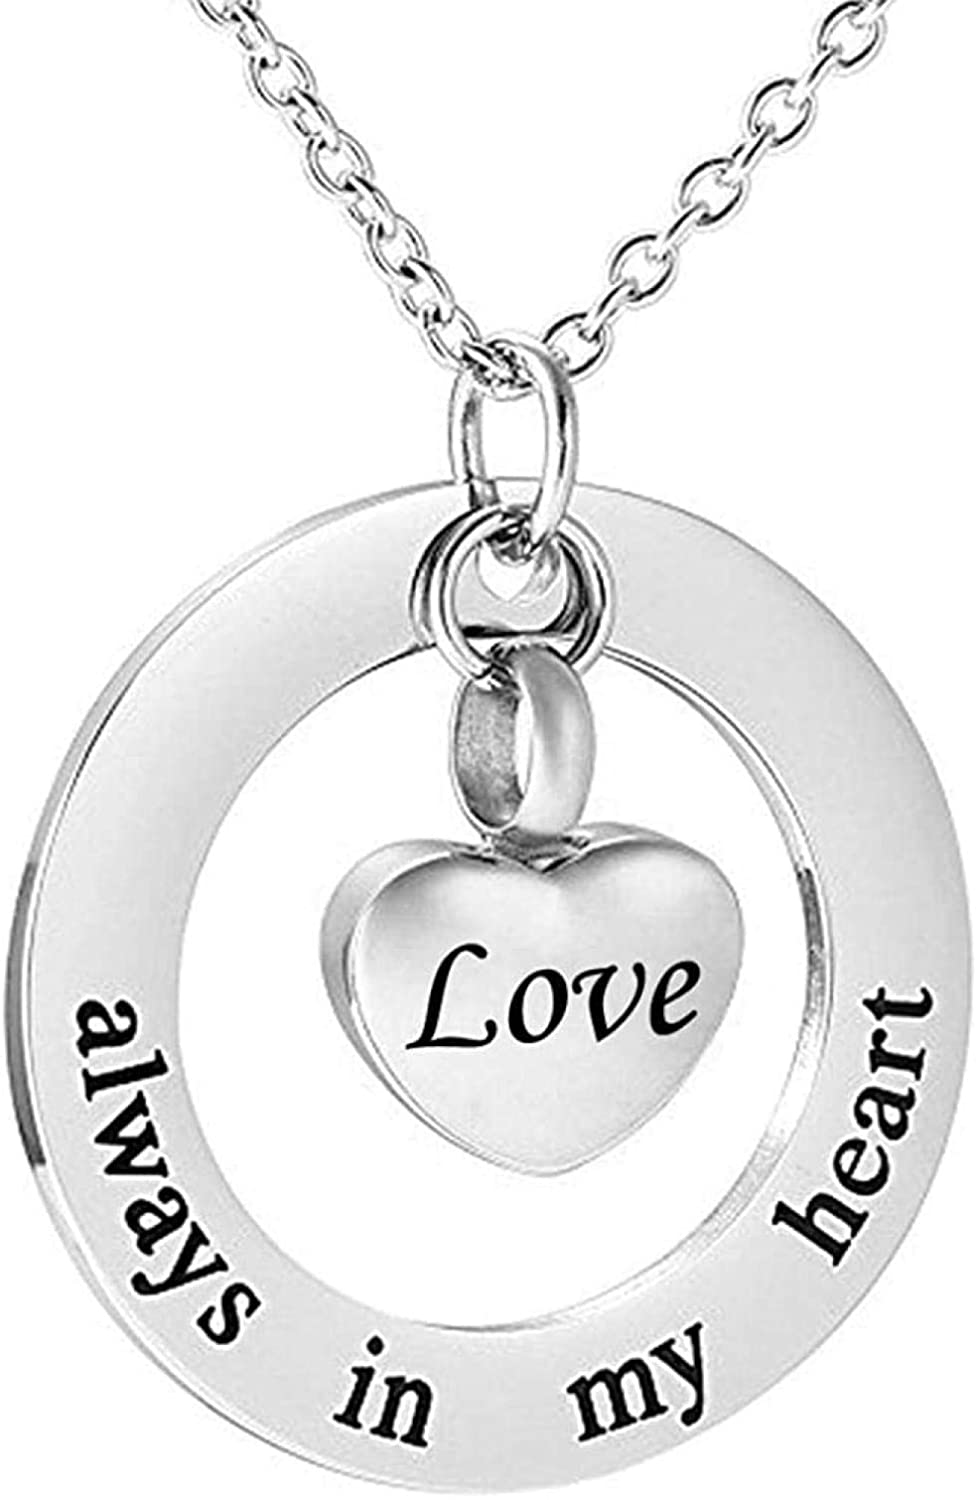 Ashes Chain Cremation Memorial Cremation Jewelry for Ashes - Always in My Heart - Memorial Keepsake Heart Necklace Pendant